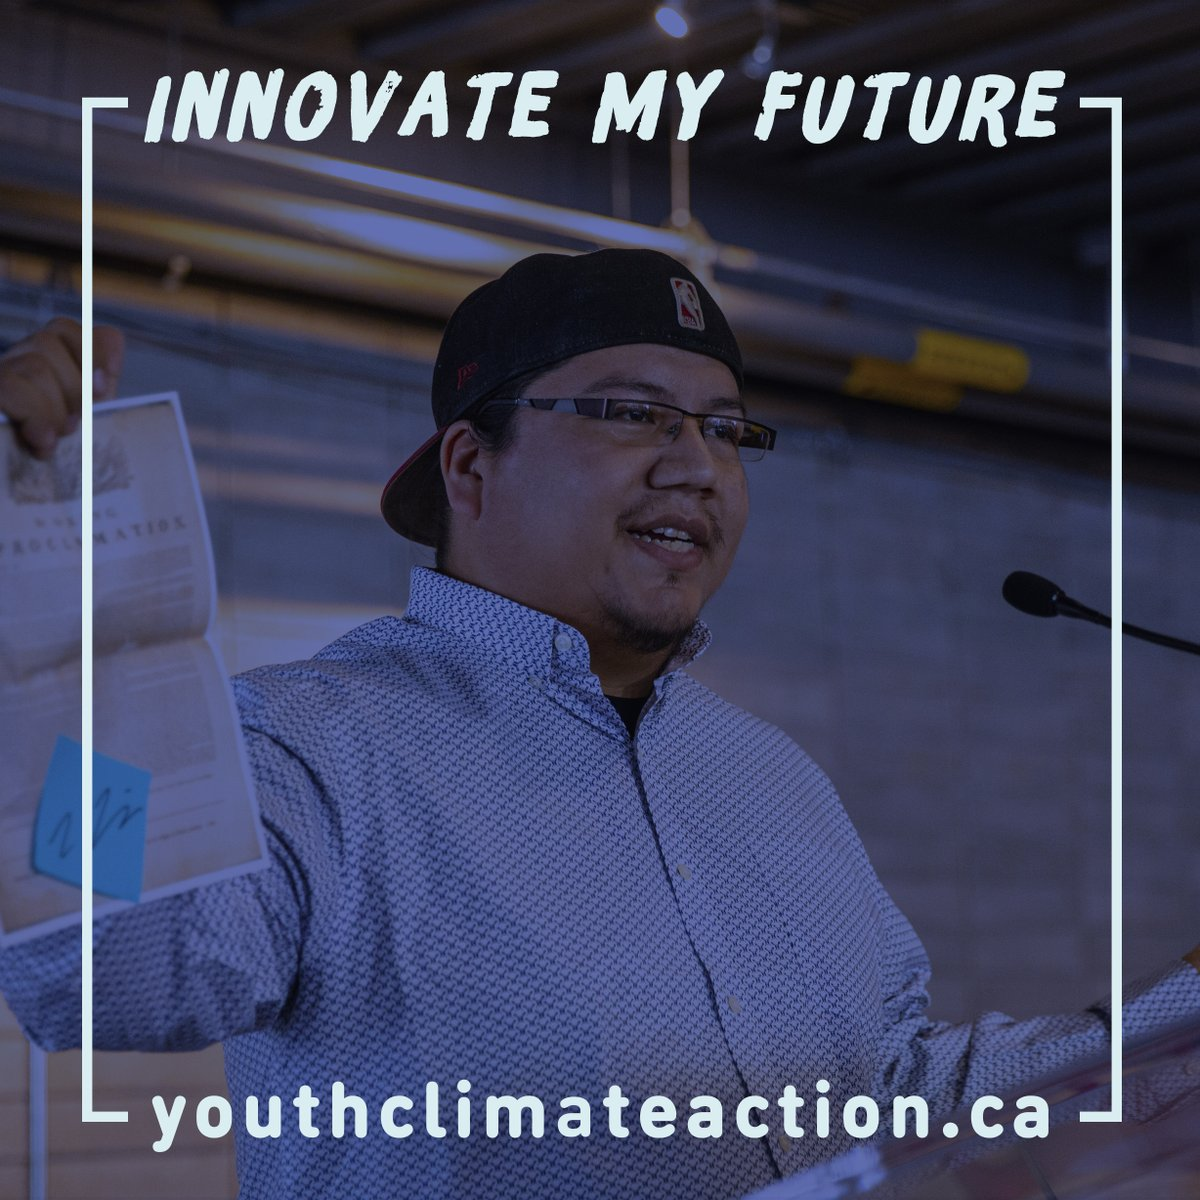 This #WorldEnvironmentDay, join #YCI as a #volunteer Climate Action Catalyst Team Lead. You'll access exclusive resources & work with local experts & youth to tackle #climateissues in your community!  Spaces are limited, apply today ➡ https://t.co/R4tPhP3kDq  @EvergreenCanada https://t.co/sv40BMTA00